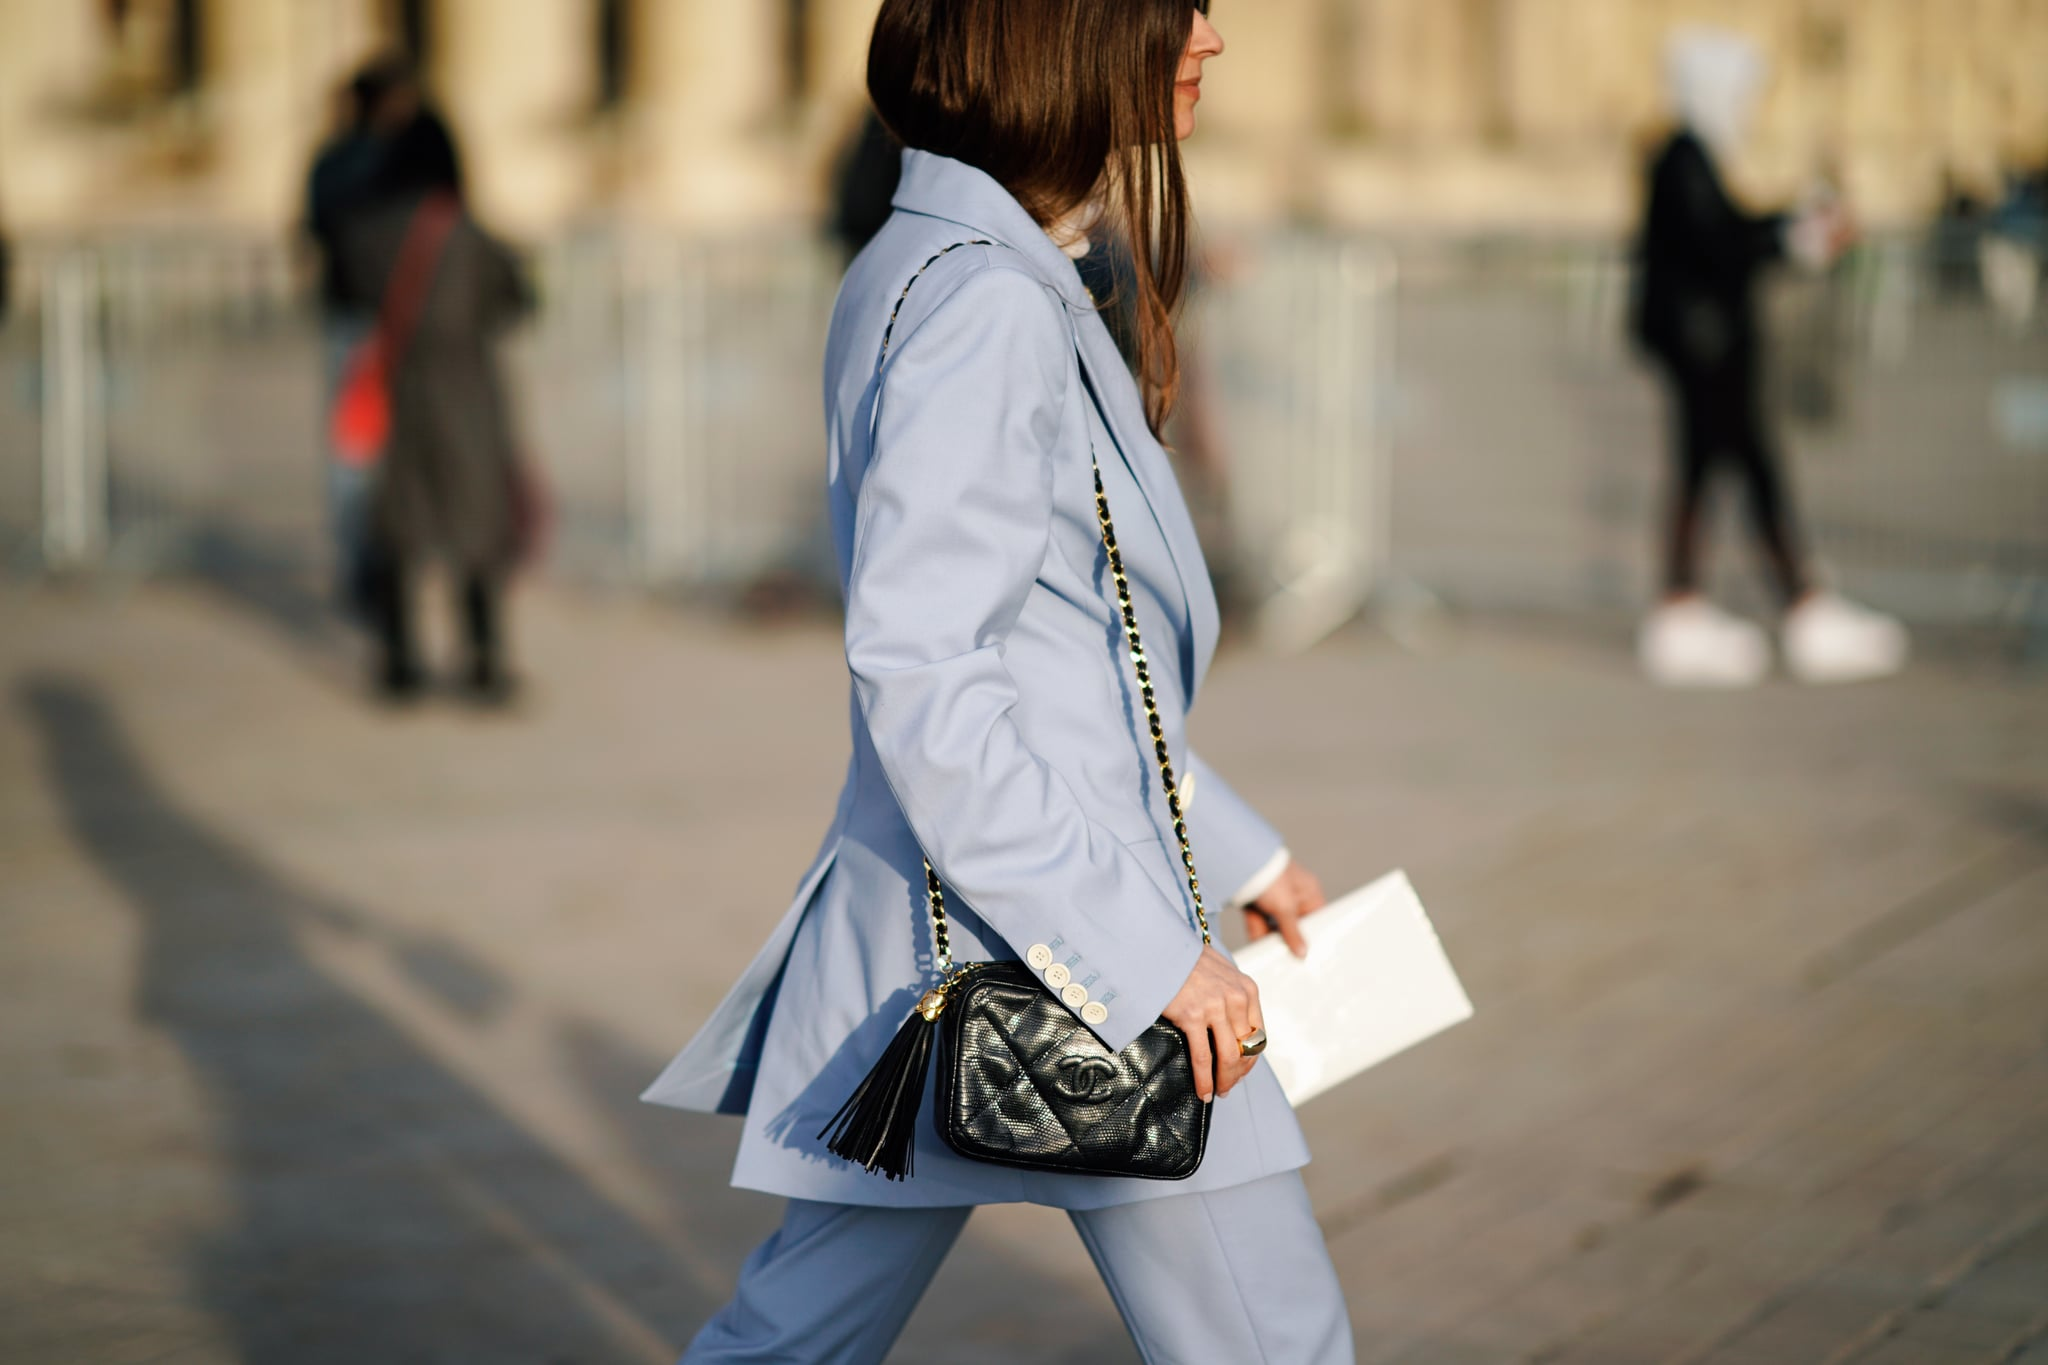 PARIS, FRANCE - MARCH 05: A guest wears a light blue pantsuit, a black Chanel bag with a pompon, outside Louis Vuitton, during Paris Fashion Week Womenswear Fall/Winter 2019/2020, on March 05, 2019 in Paris, France. (Photo by Edward Berthelot/Getty Images)